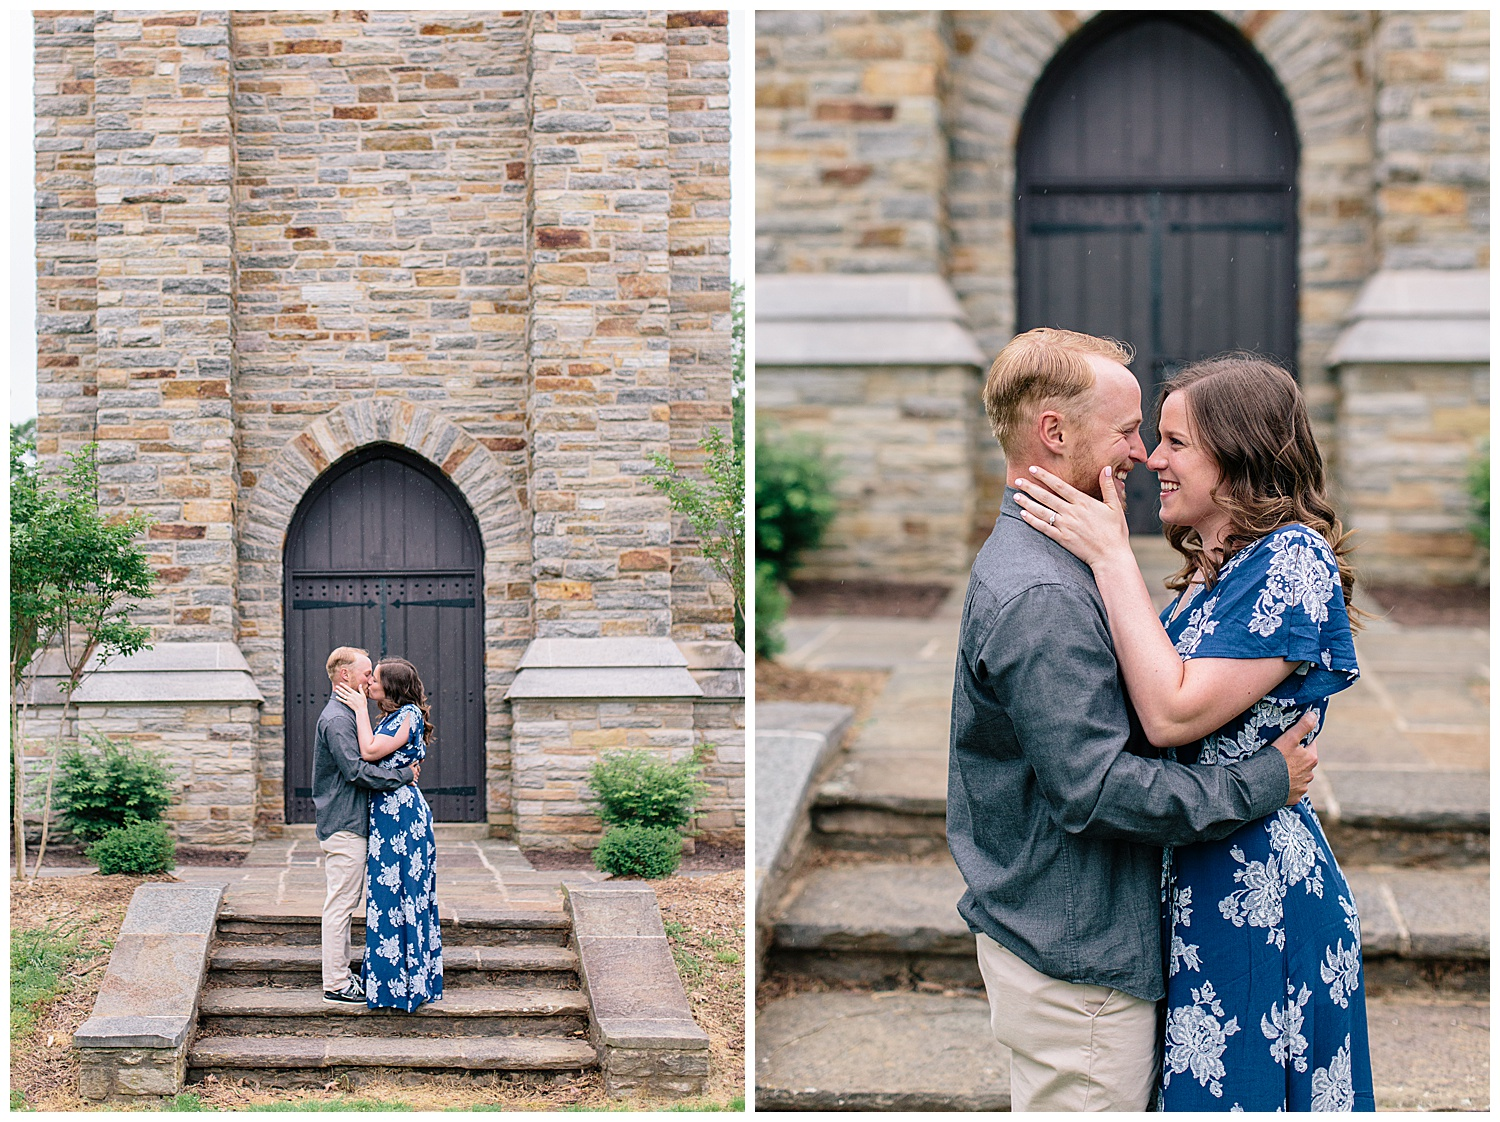 emily-belson-photography-frederick-md-engagement-05.jpg